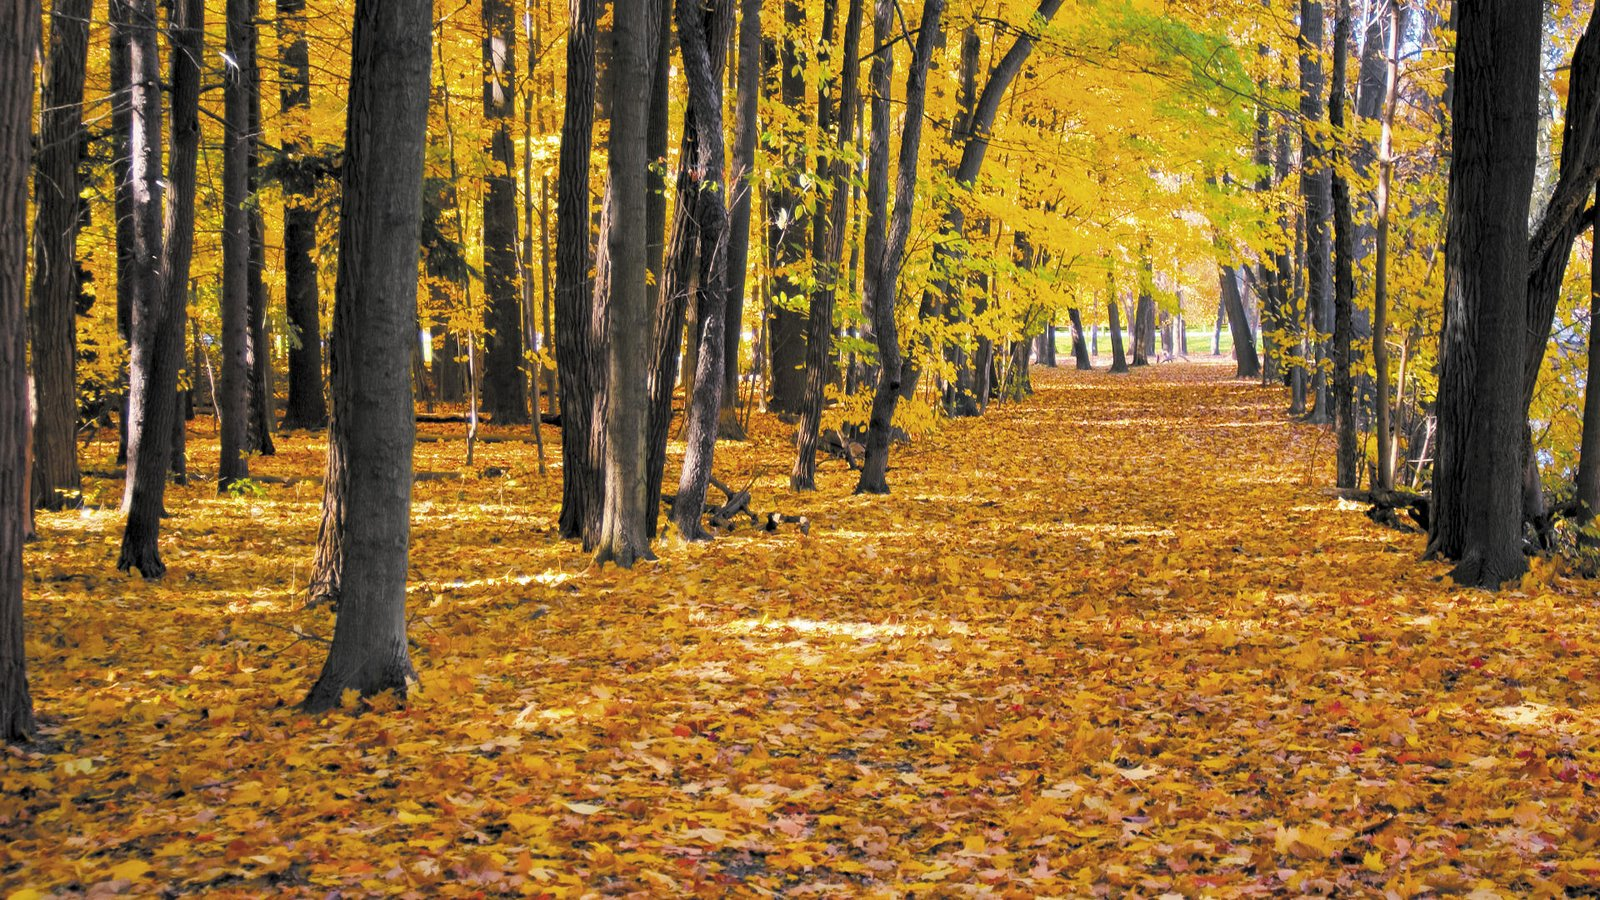 Fall leaves covered path with maple trees.